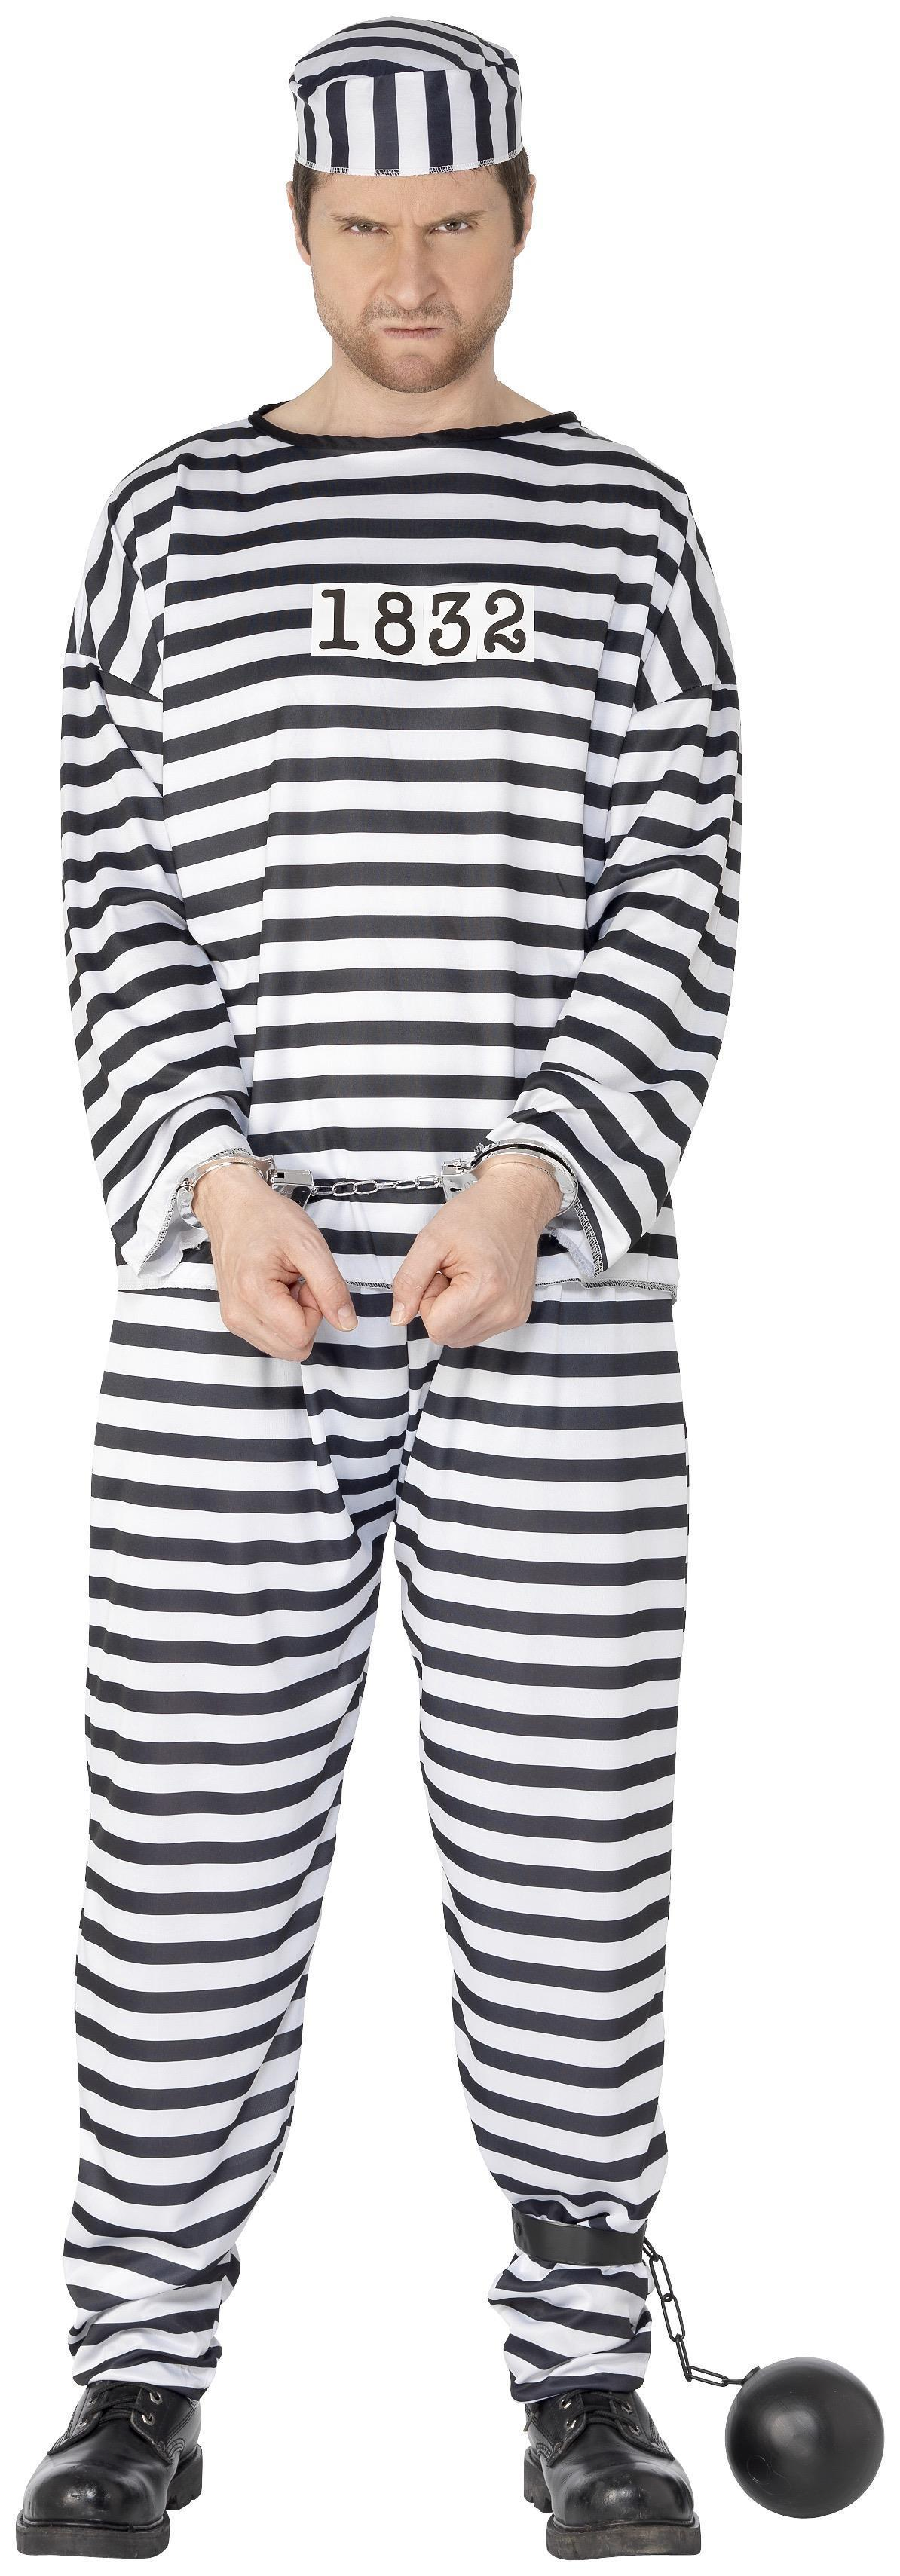 Convict Costume Black & White